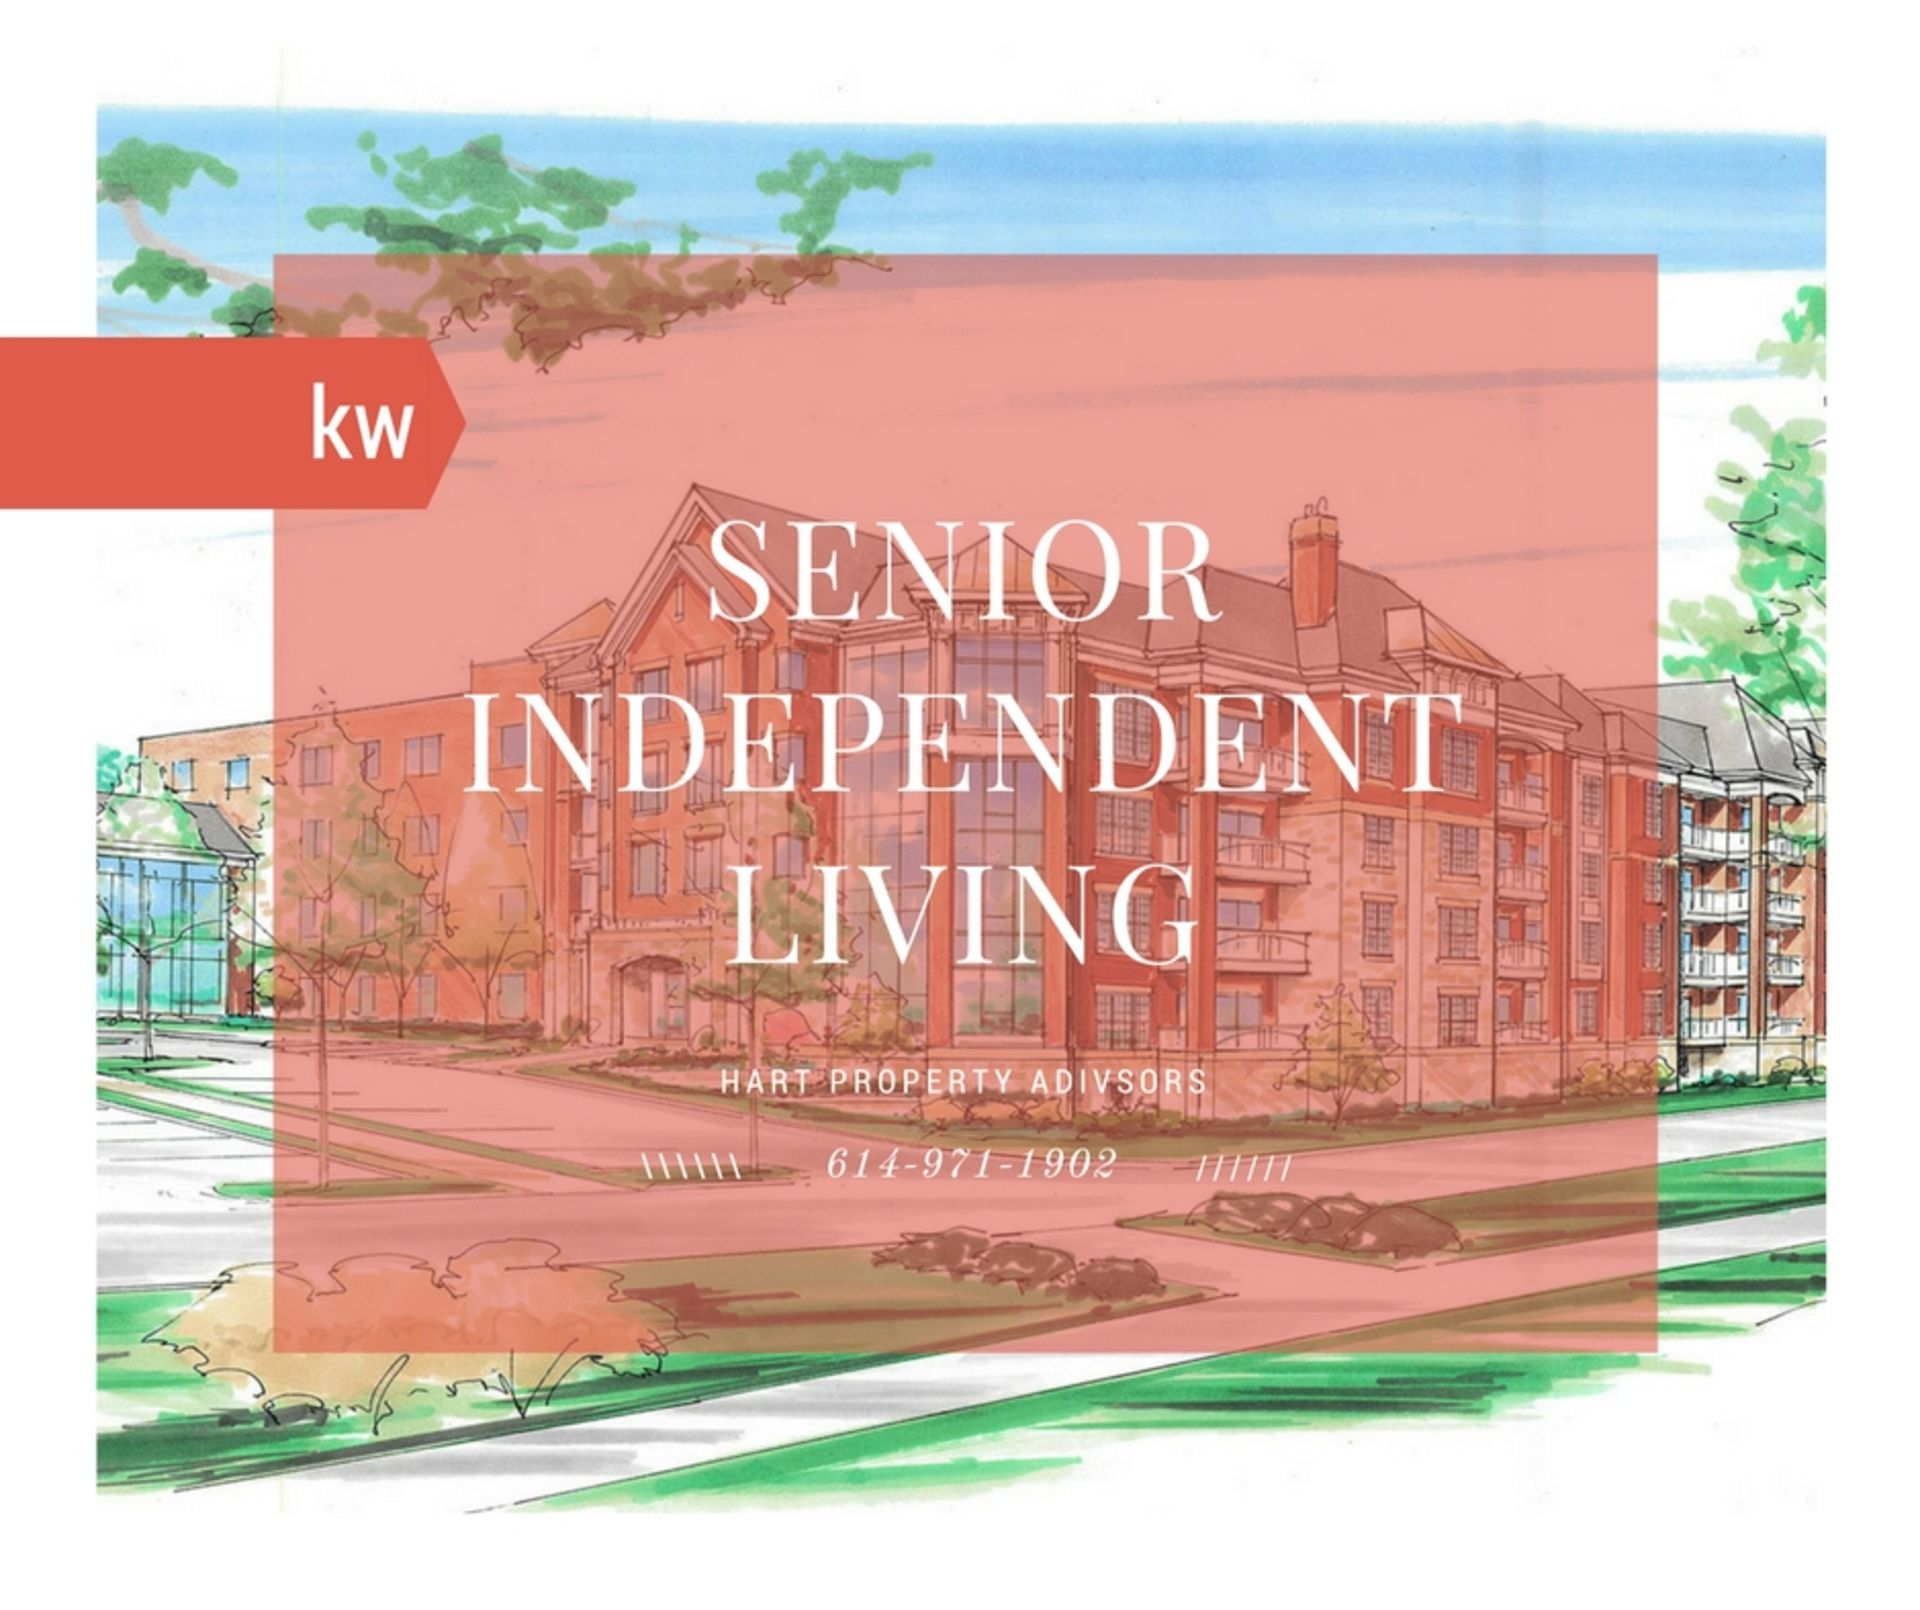 New Senior Independent Living Development! (Dublin)